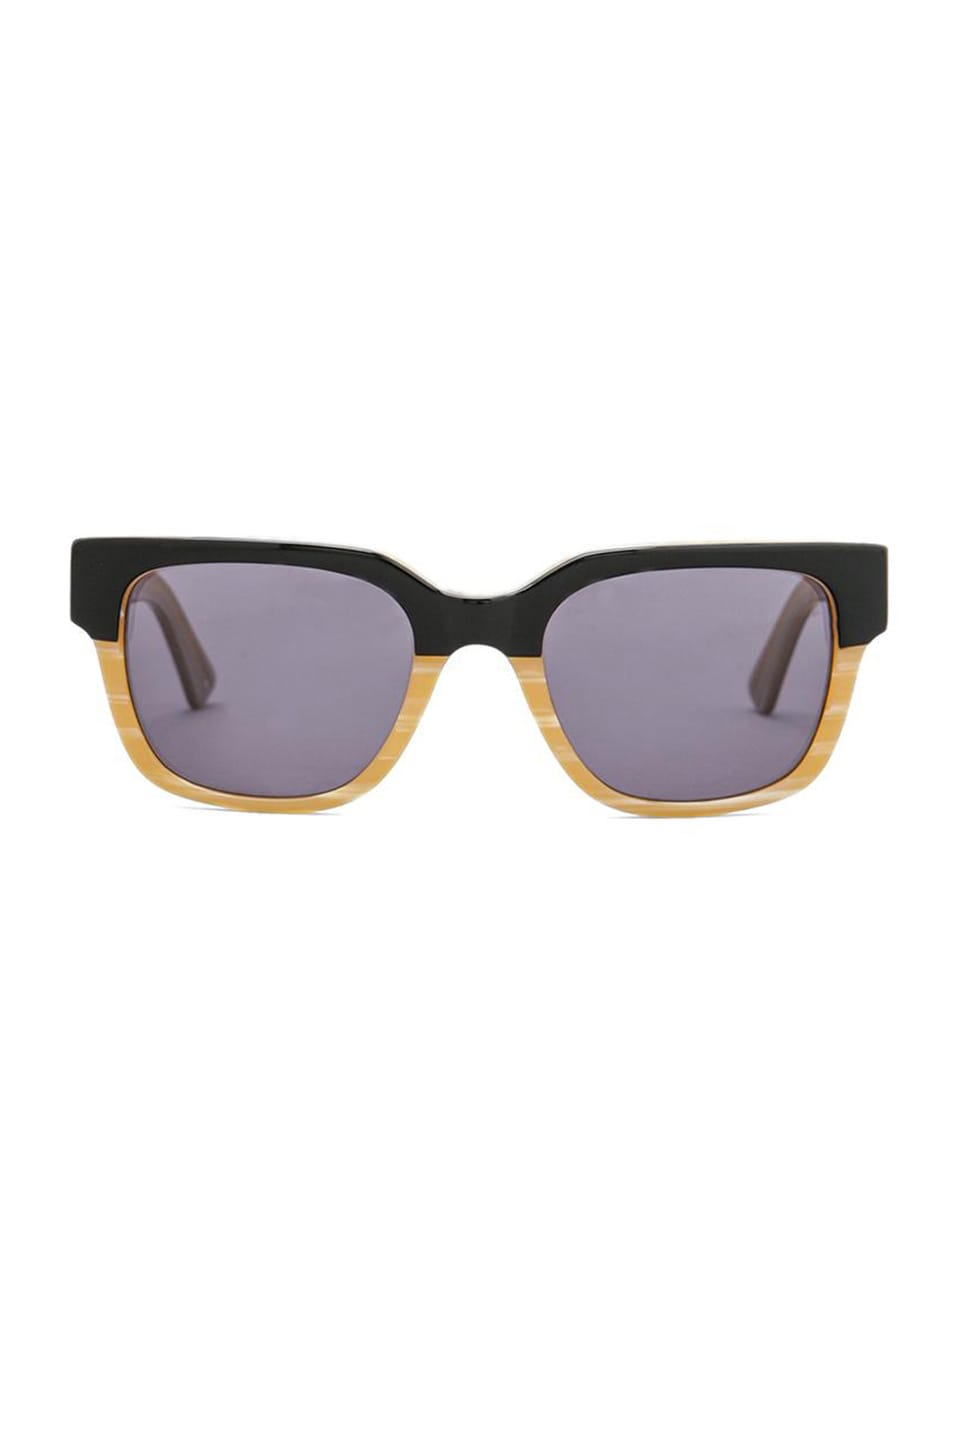 RAEN optics Garwood Sunglass in Froth